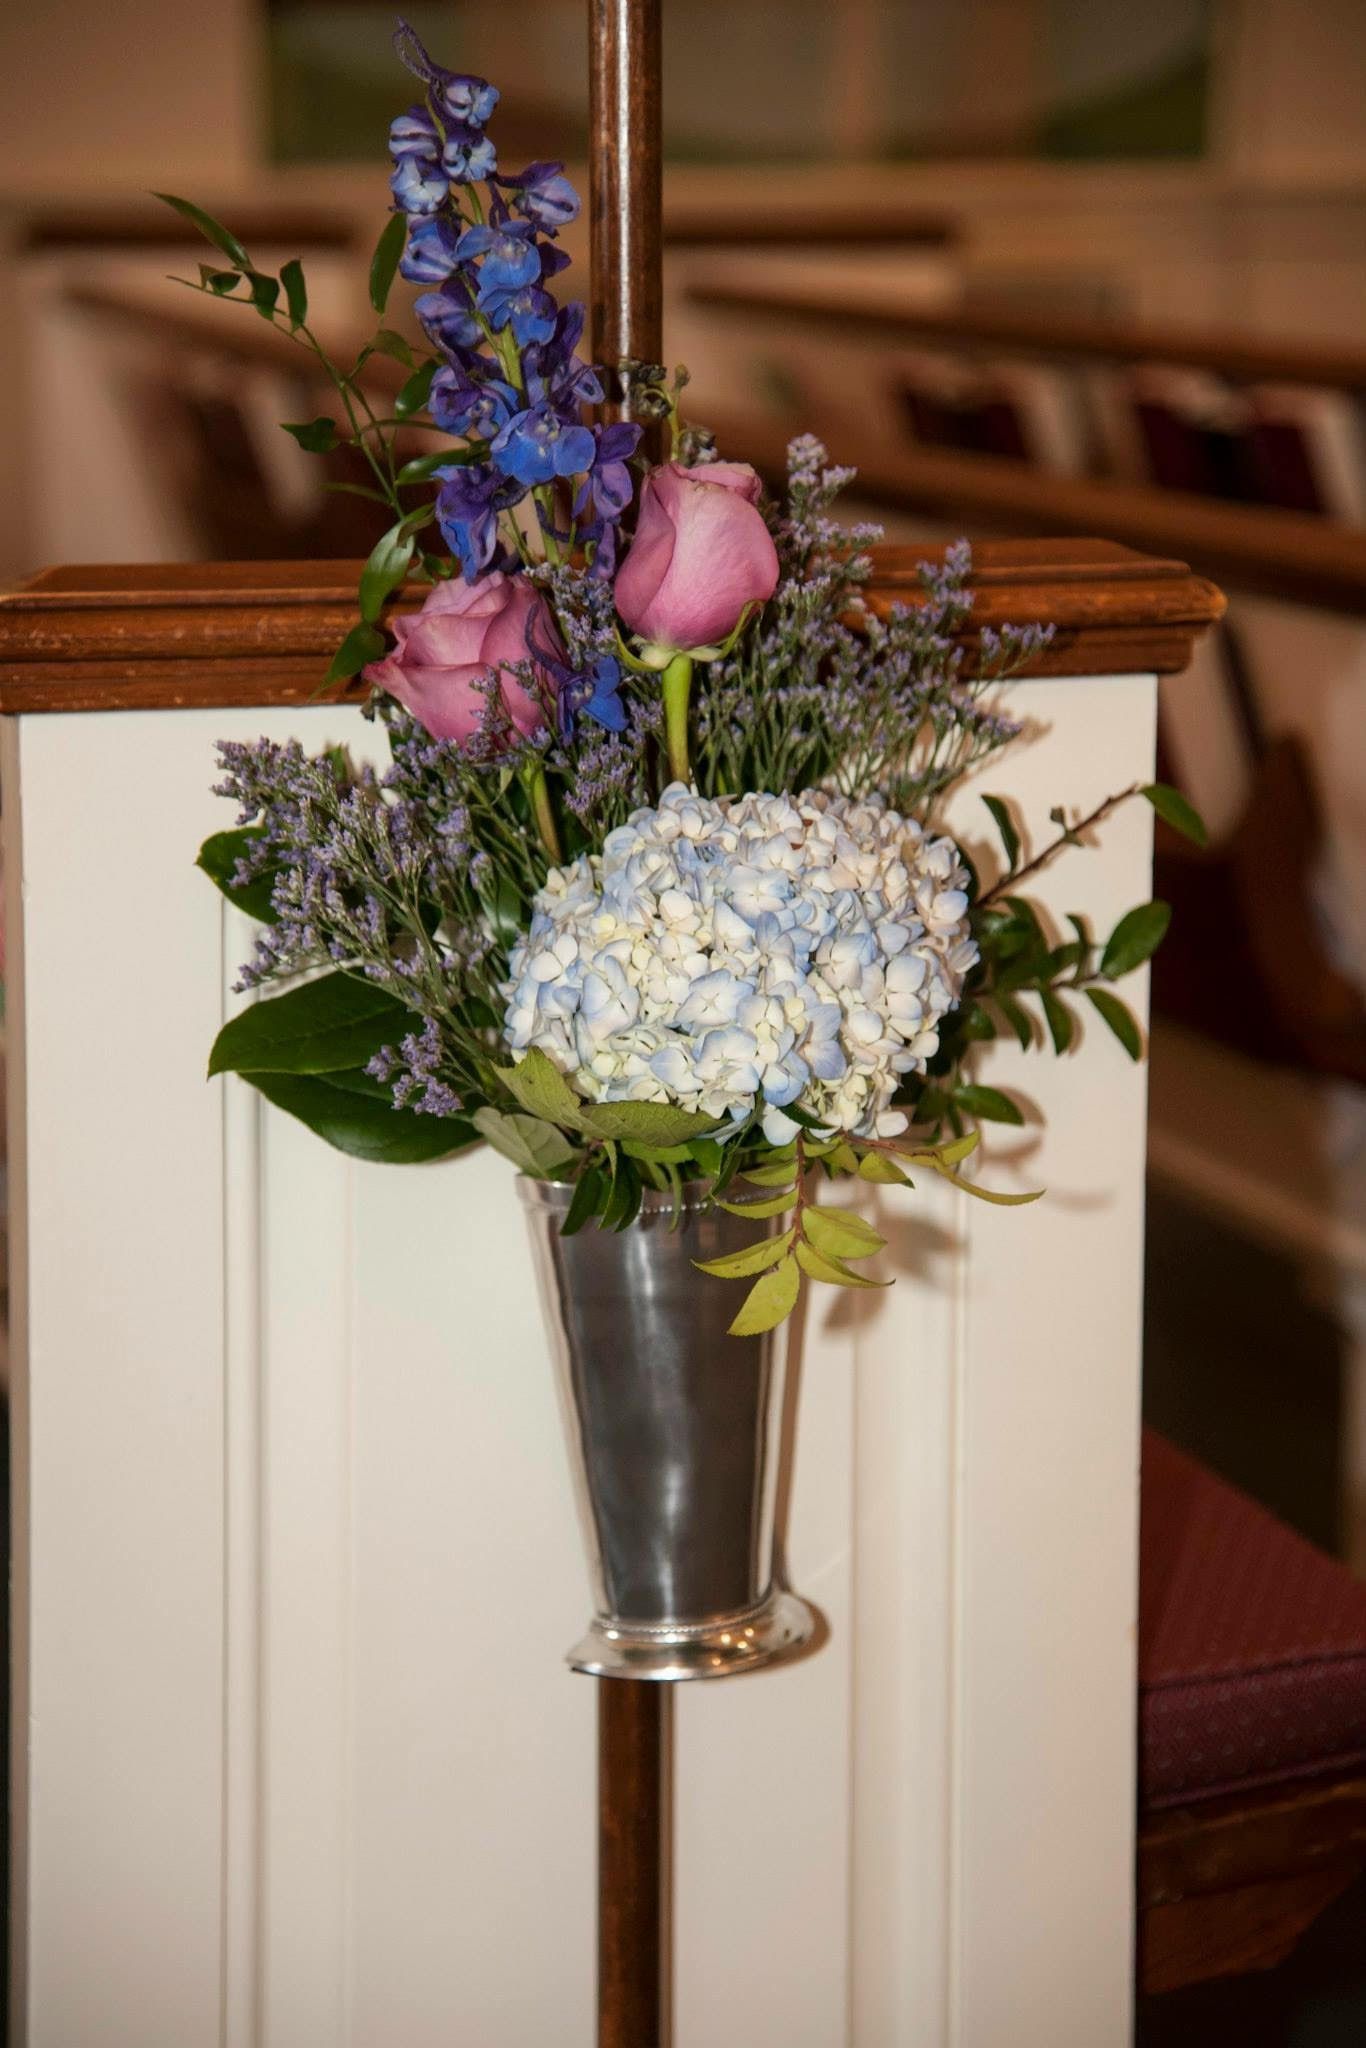 pa-pittsburgh-wedding-flowers-135.jpg